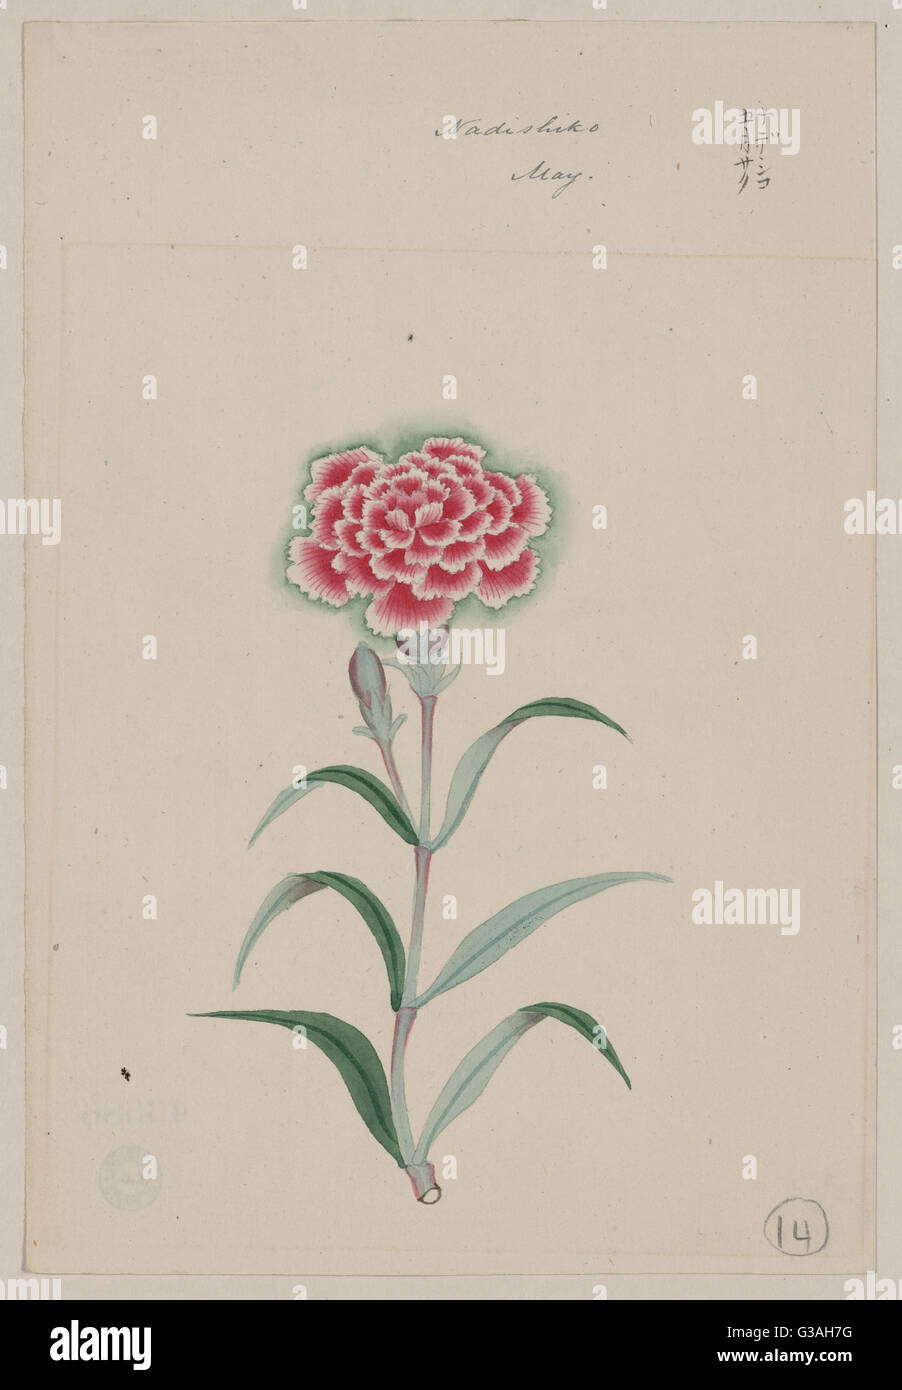 Nadeshiko - May. Drawing shows the yamato nadeshiko flower, a pink and white blossom on stem with leaves. Date 187 - Stock Image